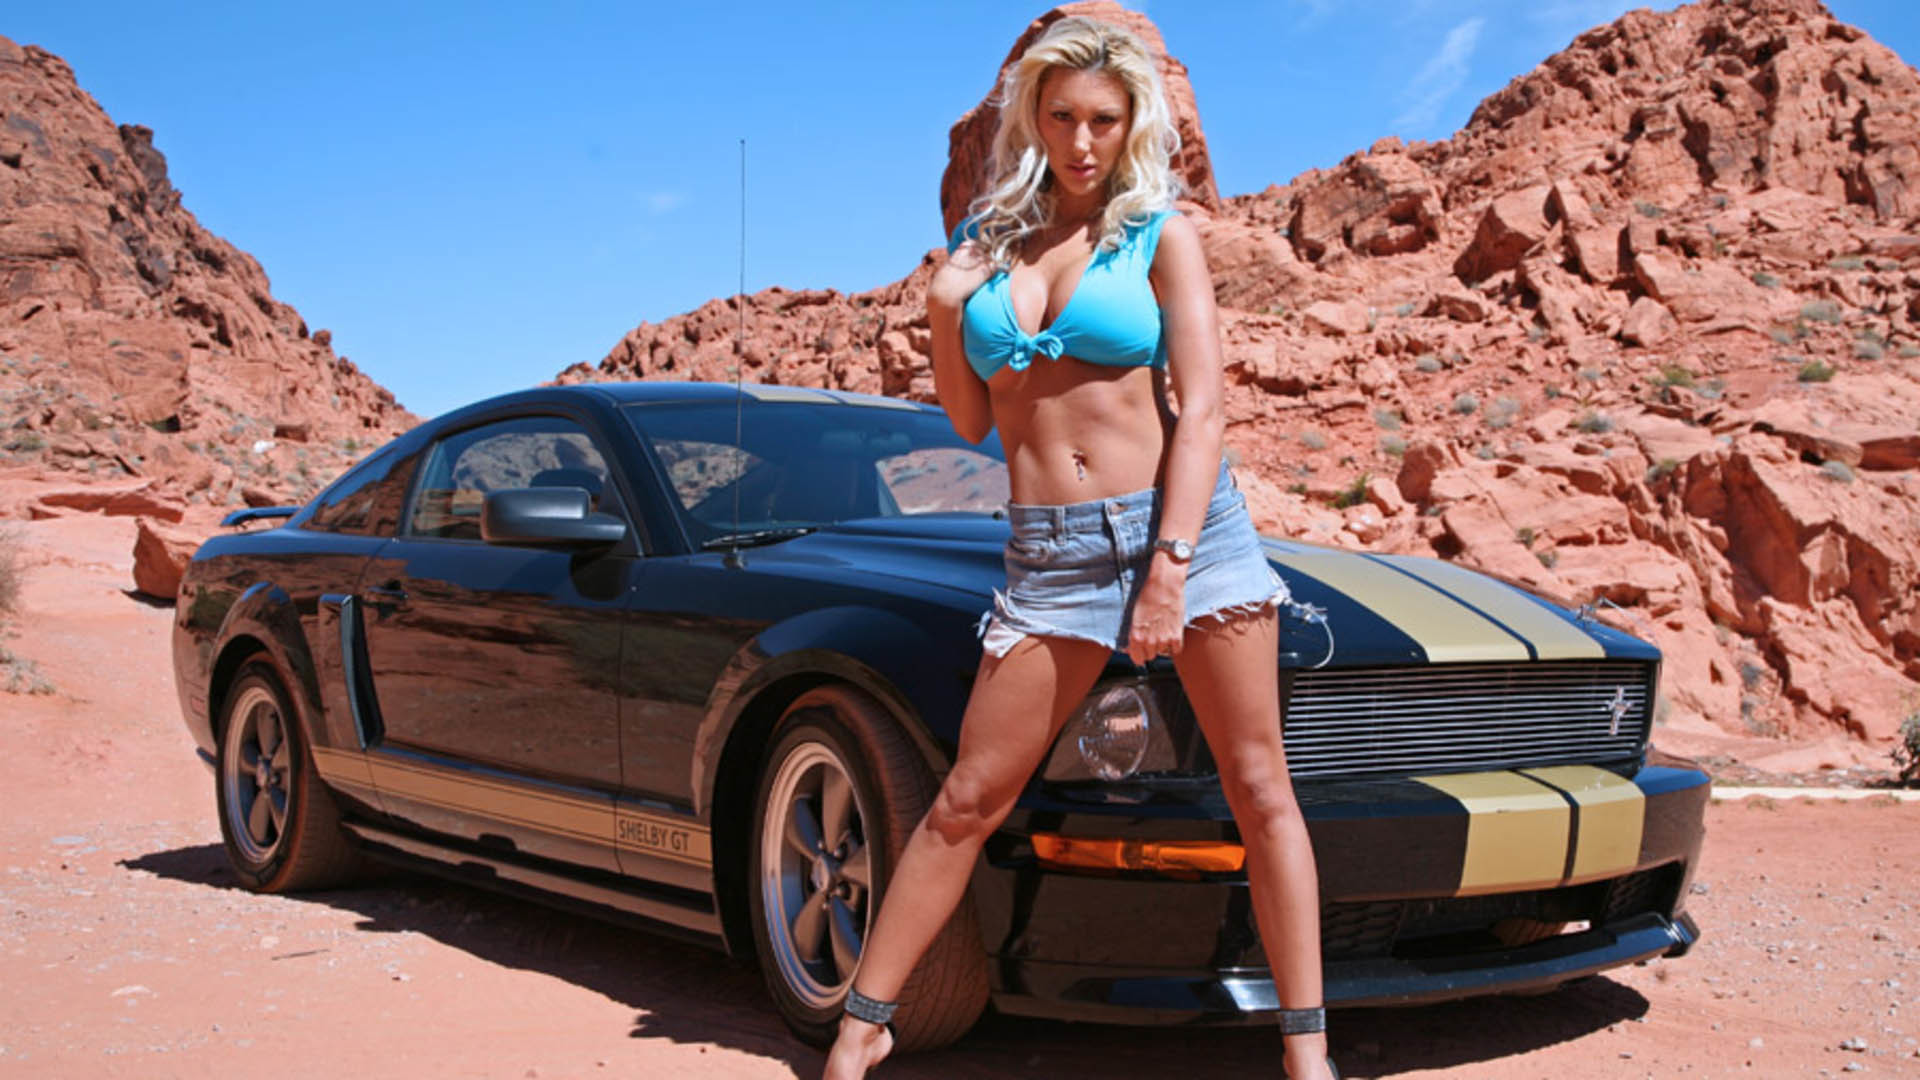 HOT girls and mustangs | Hot girl with hot ford mustang wallpaper